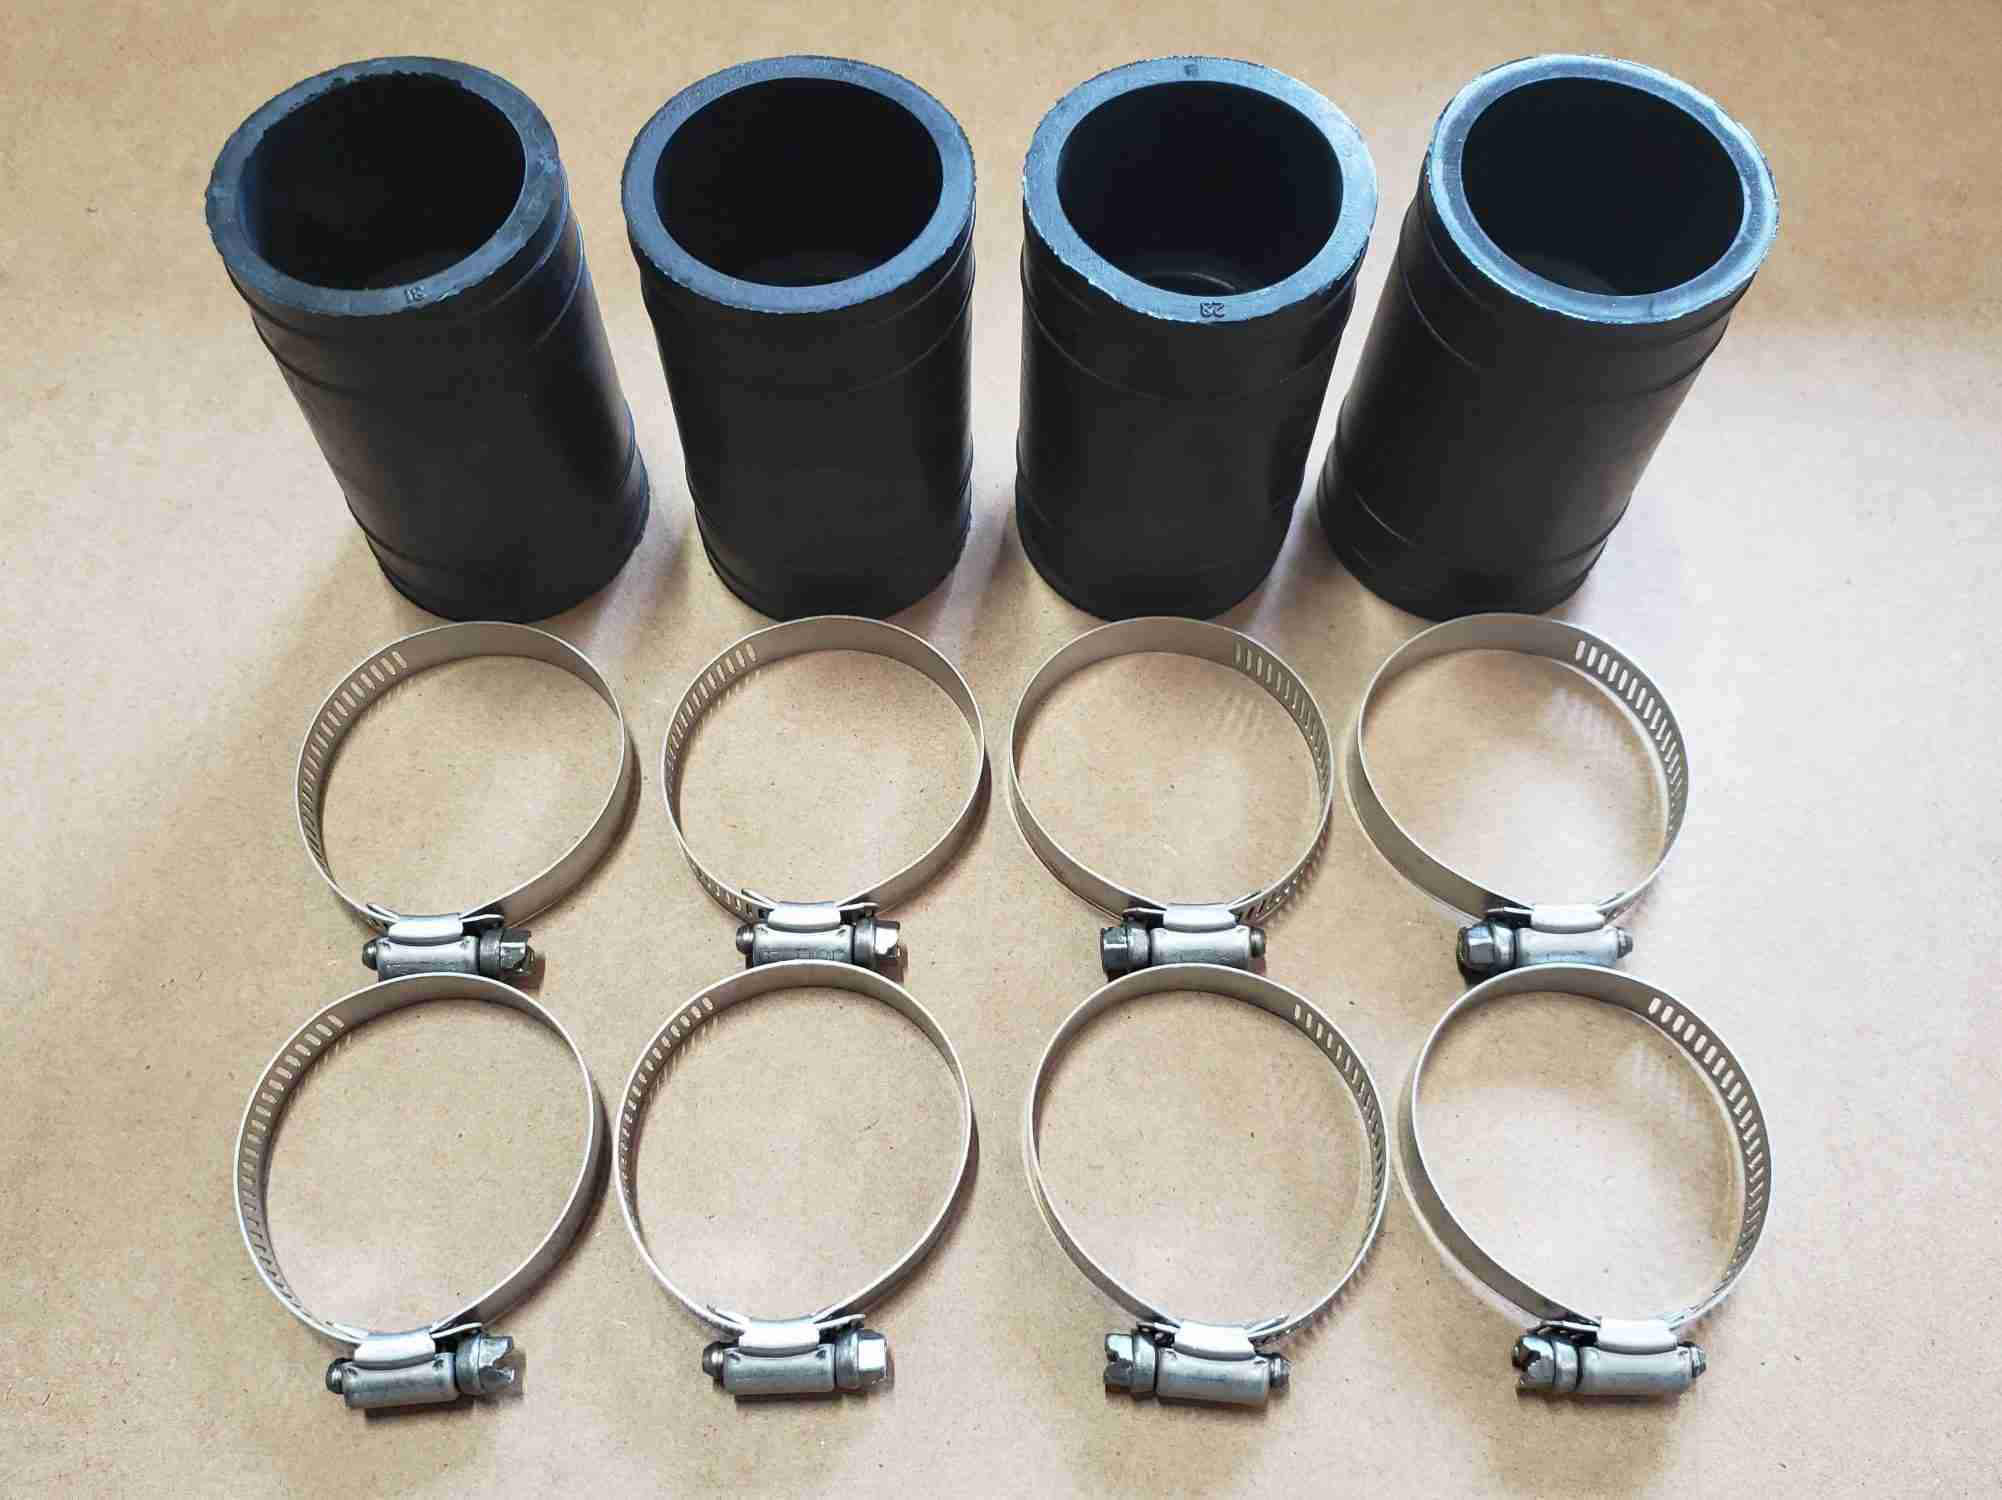 Hose and clamps for add on kit